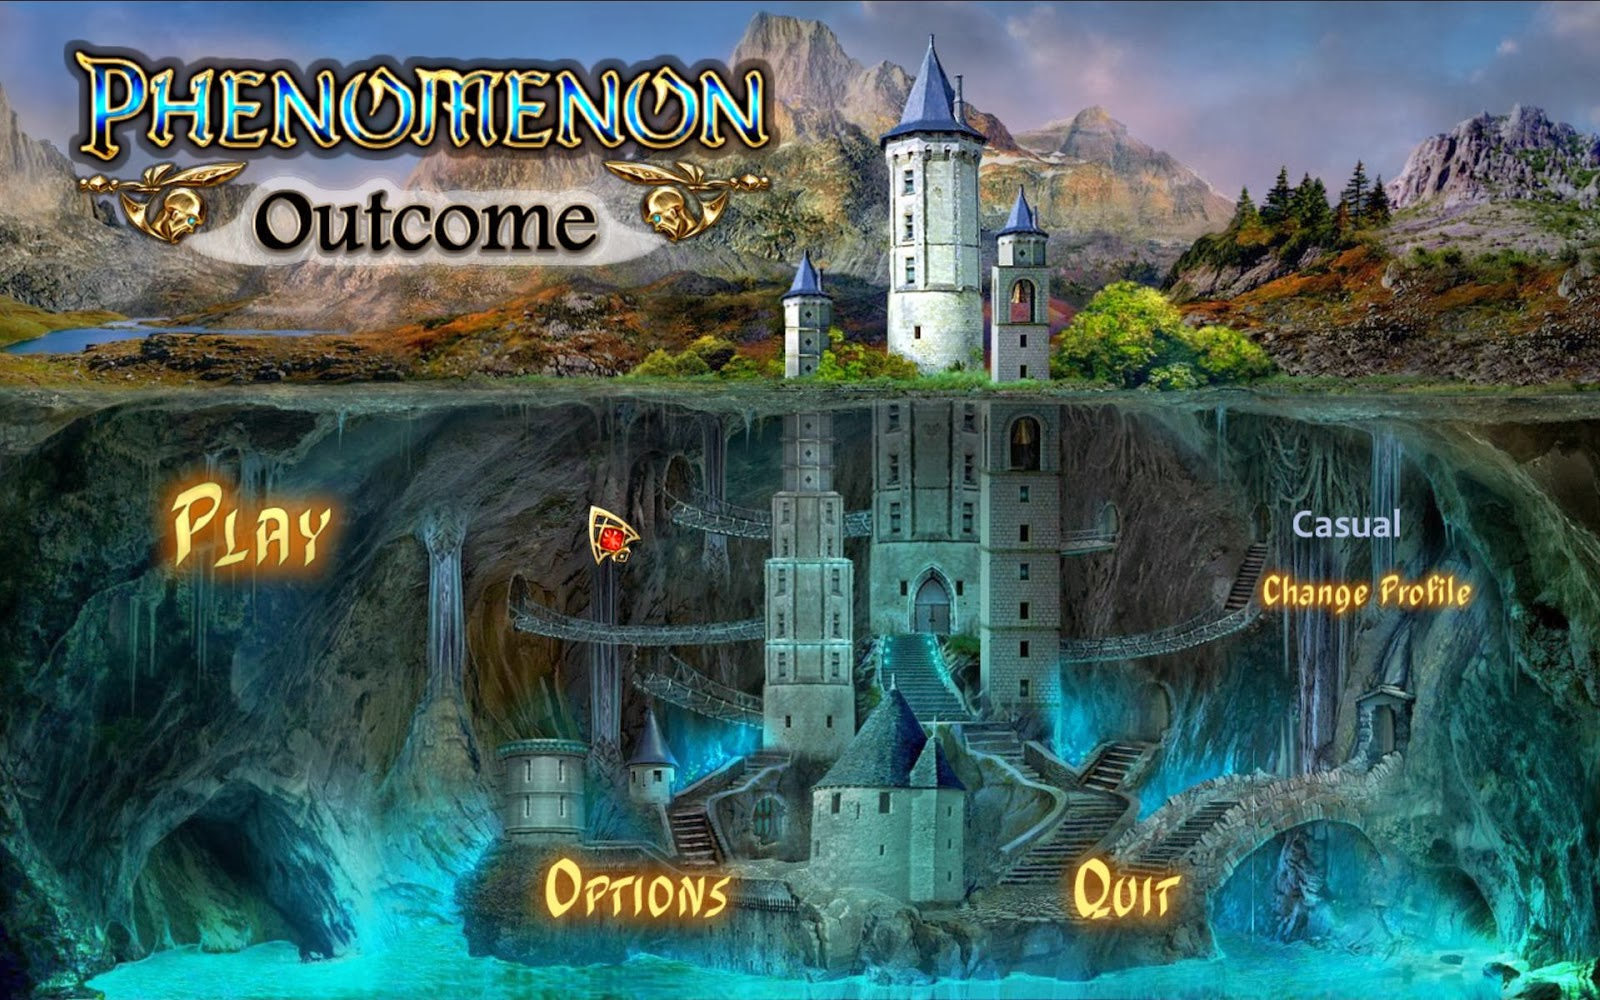 http://gaming.metroblog.com/phenomenon_3_outcome_game_final